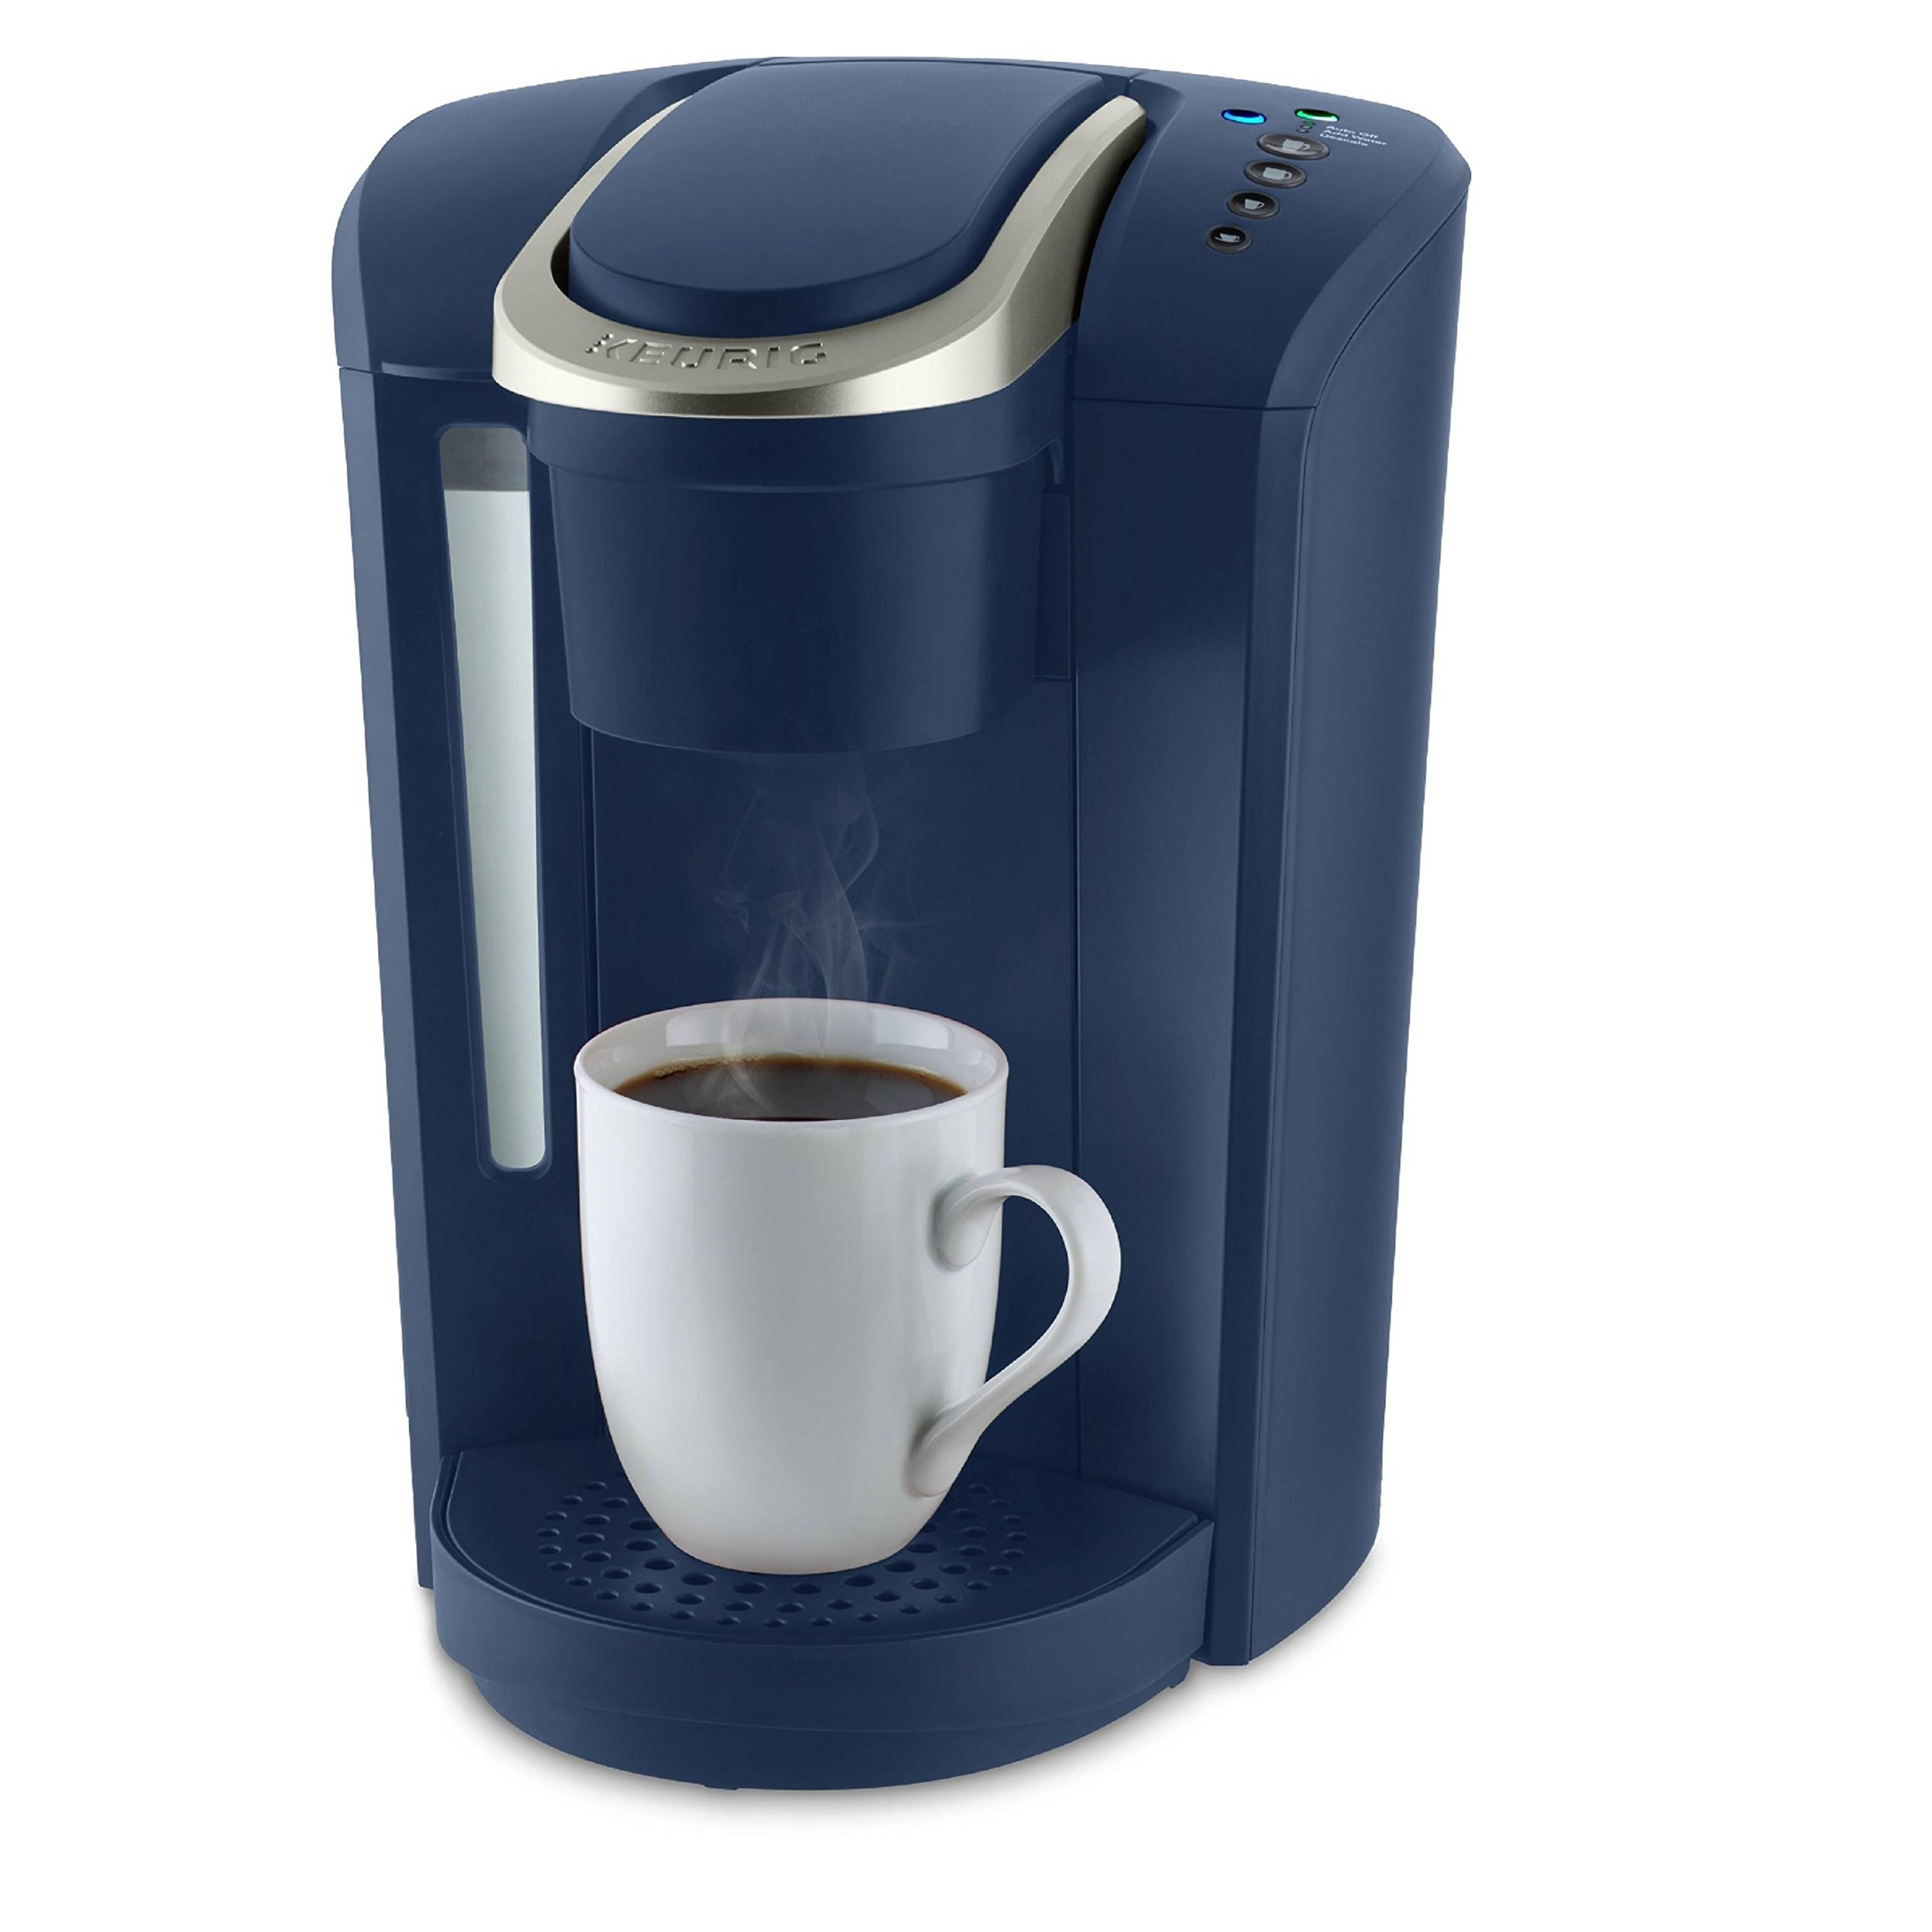 Keurig K-Select Single-Serve K-Cup Pod Coffee Maker, Matte Navy Blue by Keurig (Image #2)